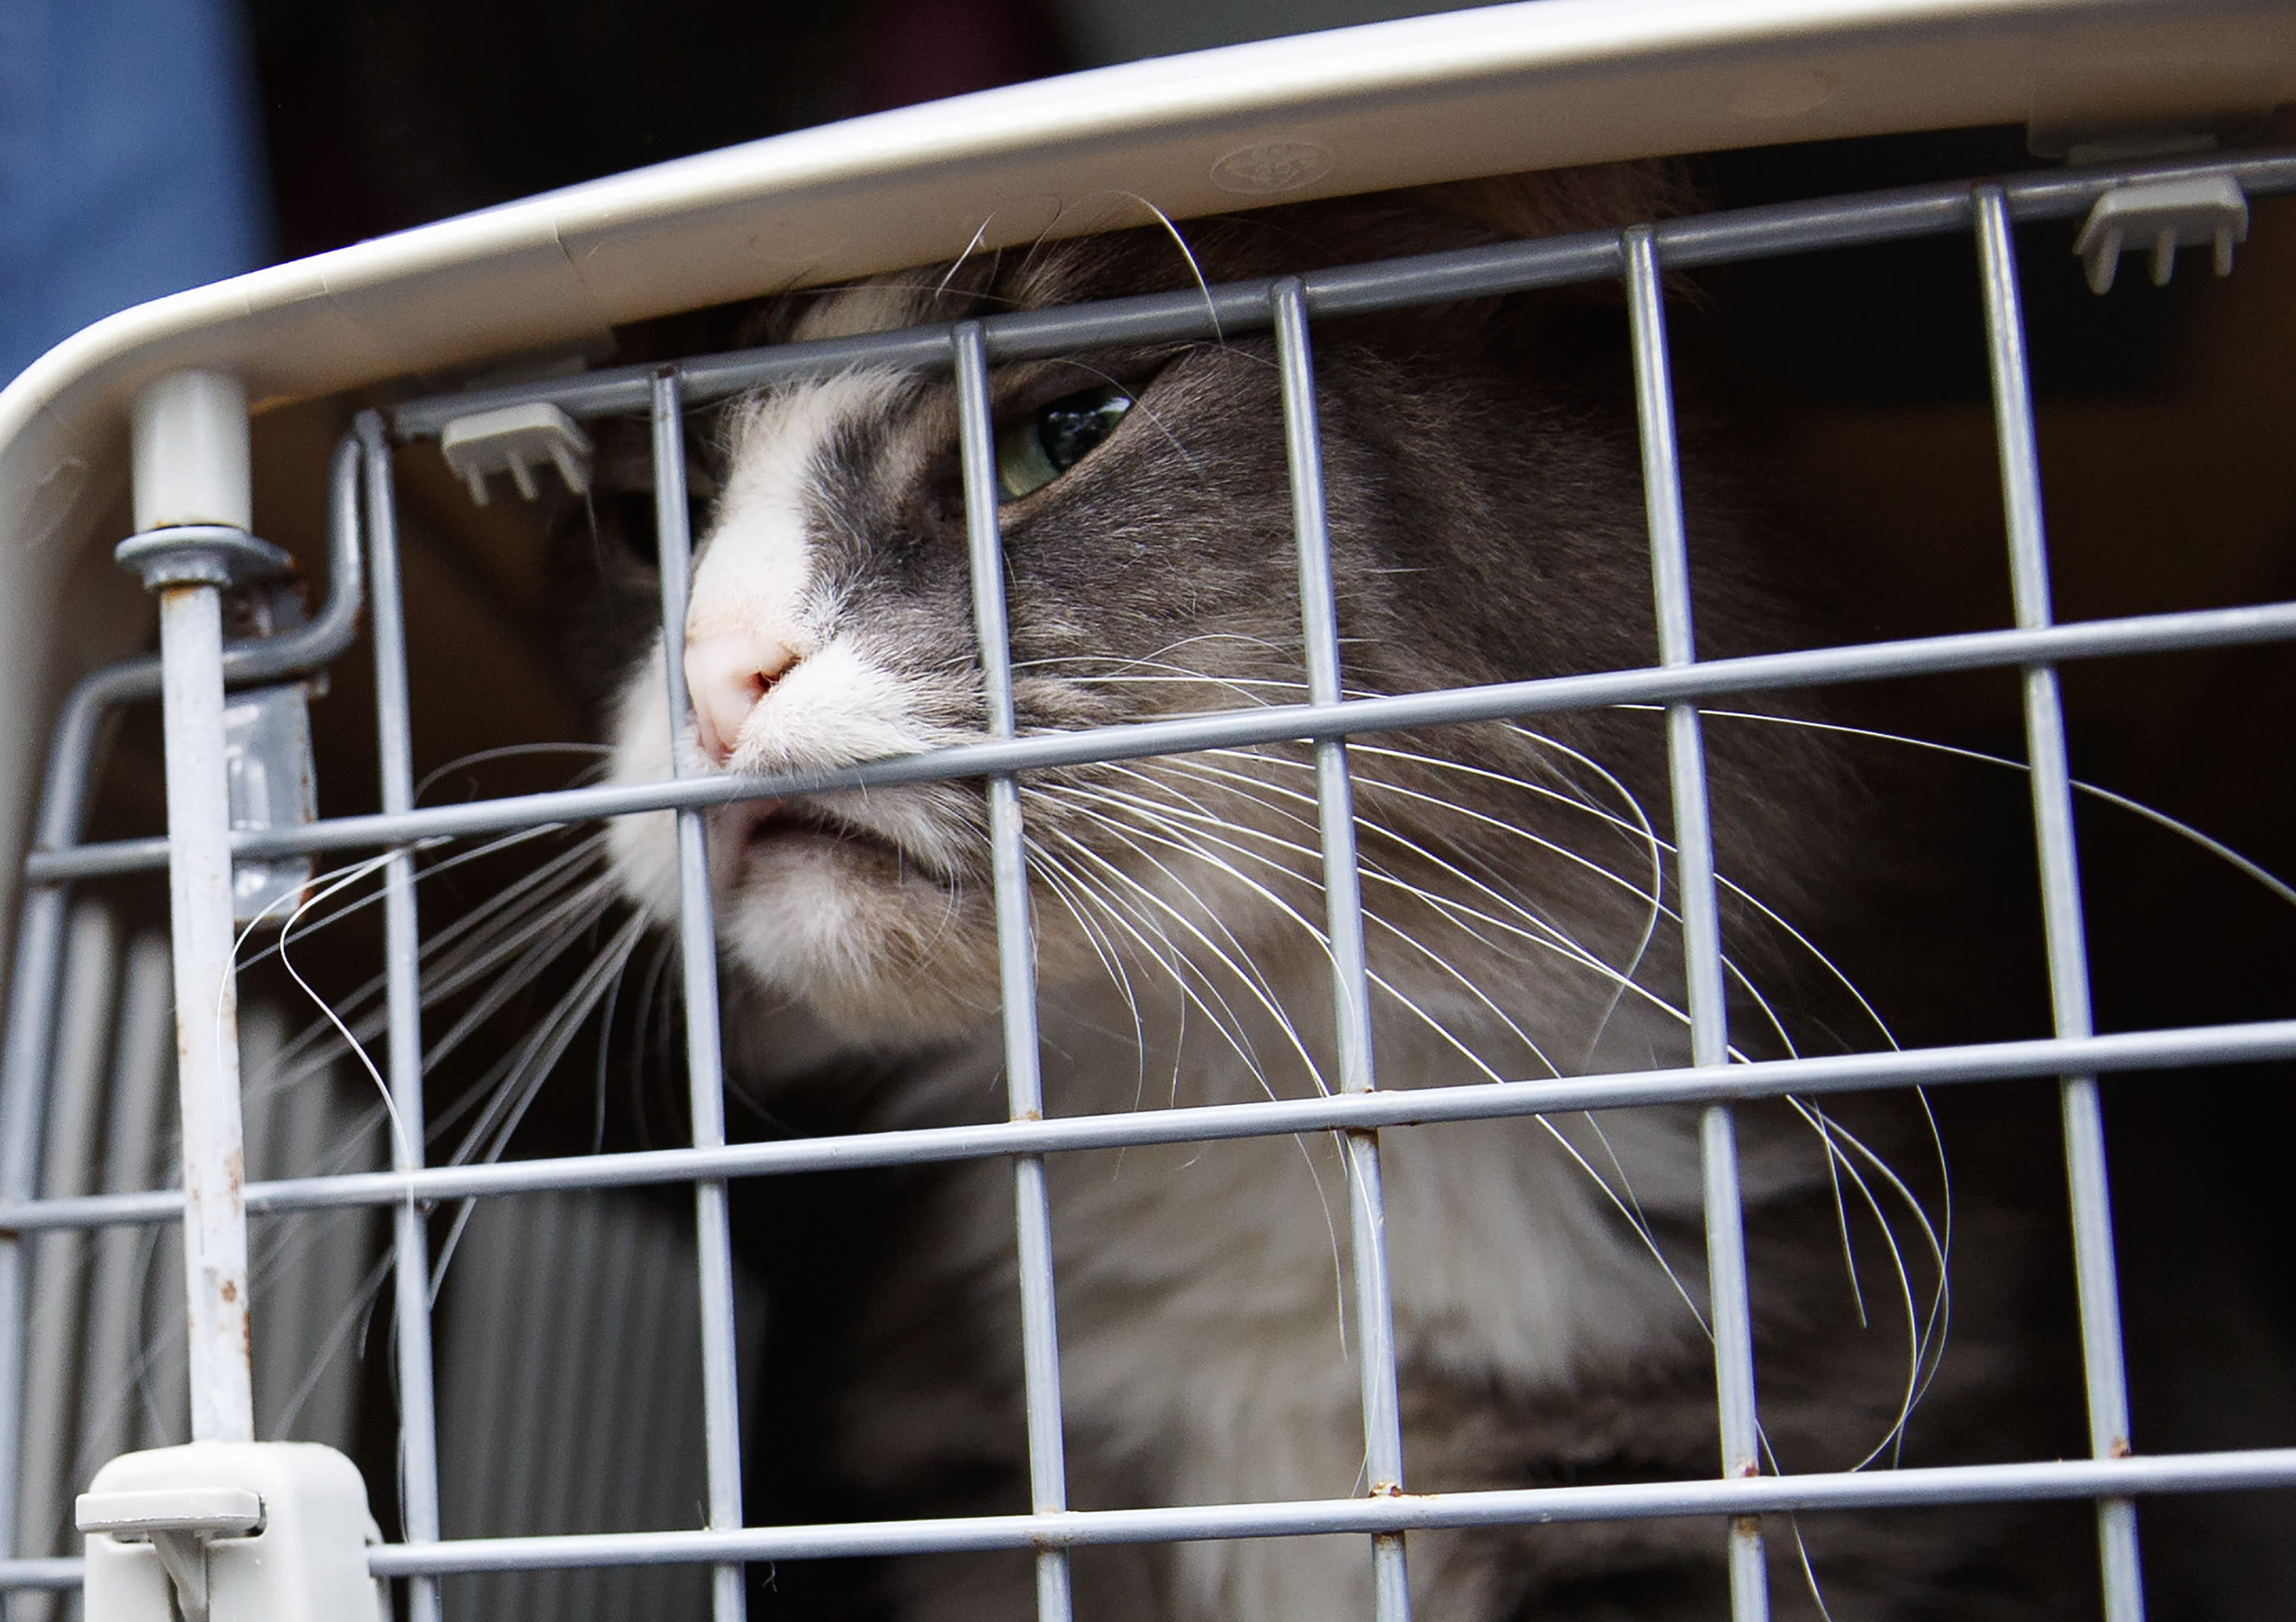 A long-haired tabby cat pushes against the crate door during the unloading of 26 cats and dogs from a van at Humane Rescue Alliance in Washington, Tuesday, Sept. 11, 2018, from Norfolk Animal Care and Control of Norfolk, Va., in advance of Hurricane Florence. People aren't the only ones evacuating to get out of the path of Hurricane Florence. The dogs and cats will all be available for adoption. (AP Photo/Carolyn Kaster)